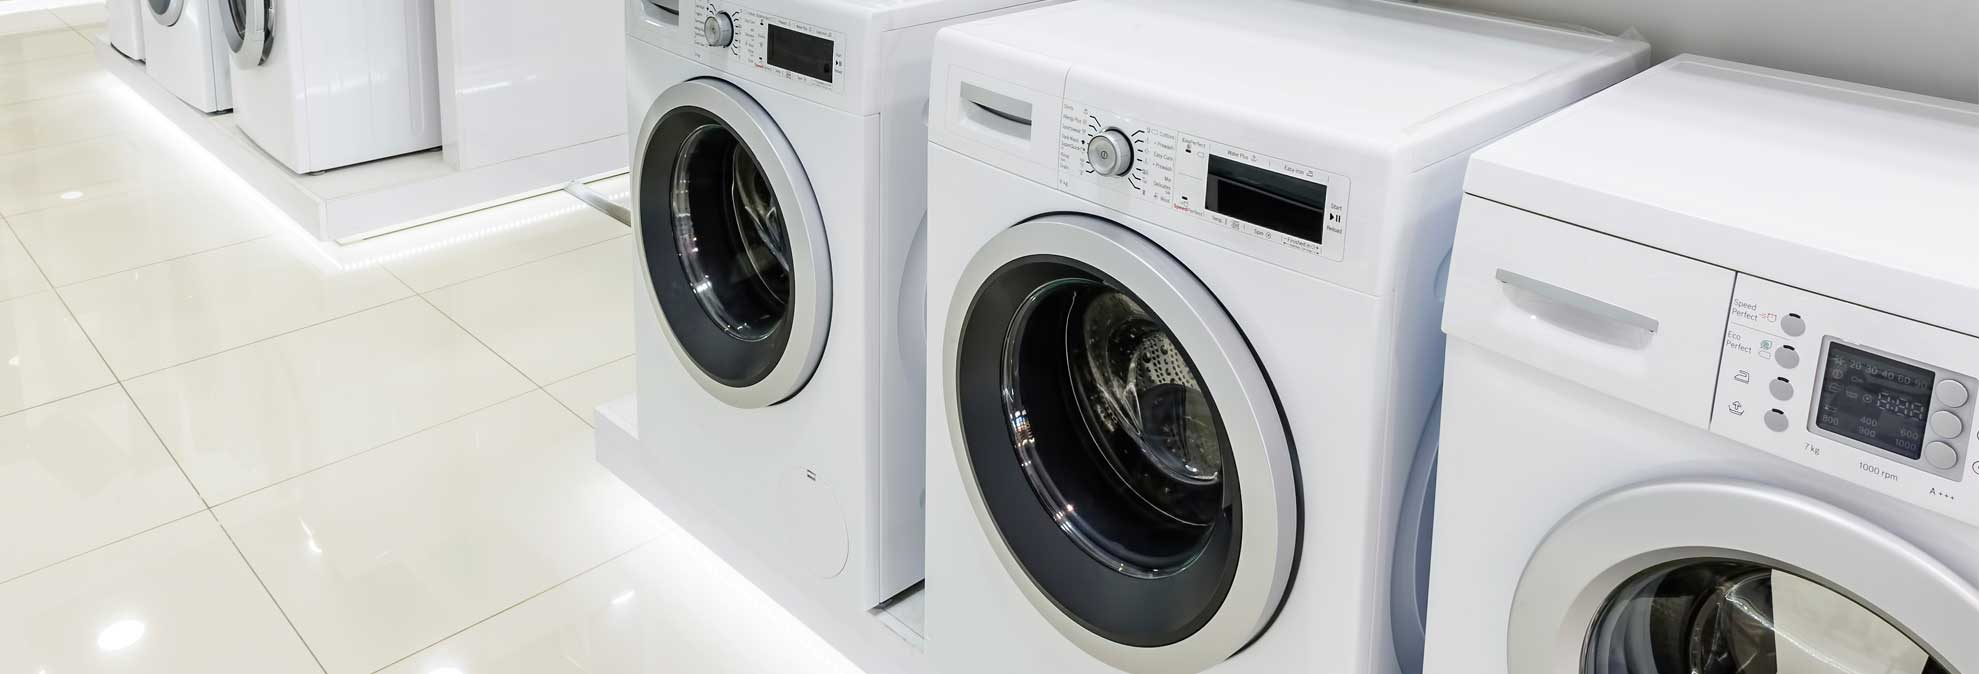 Best Home Appliance Insurance